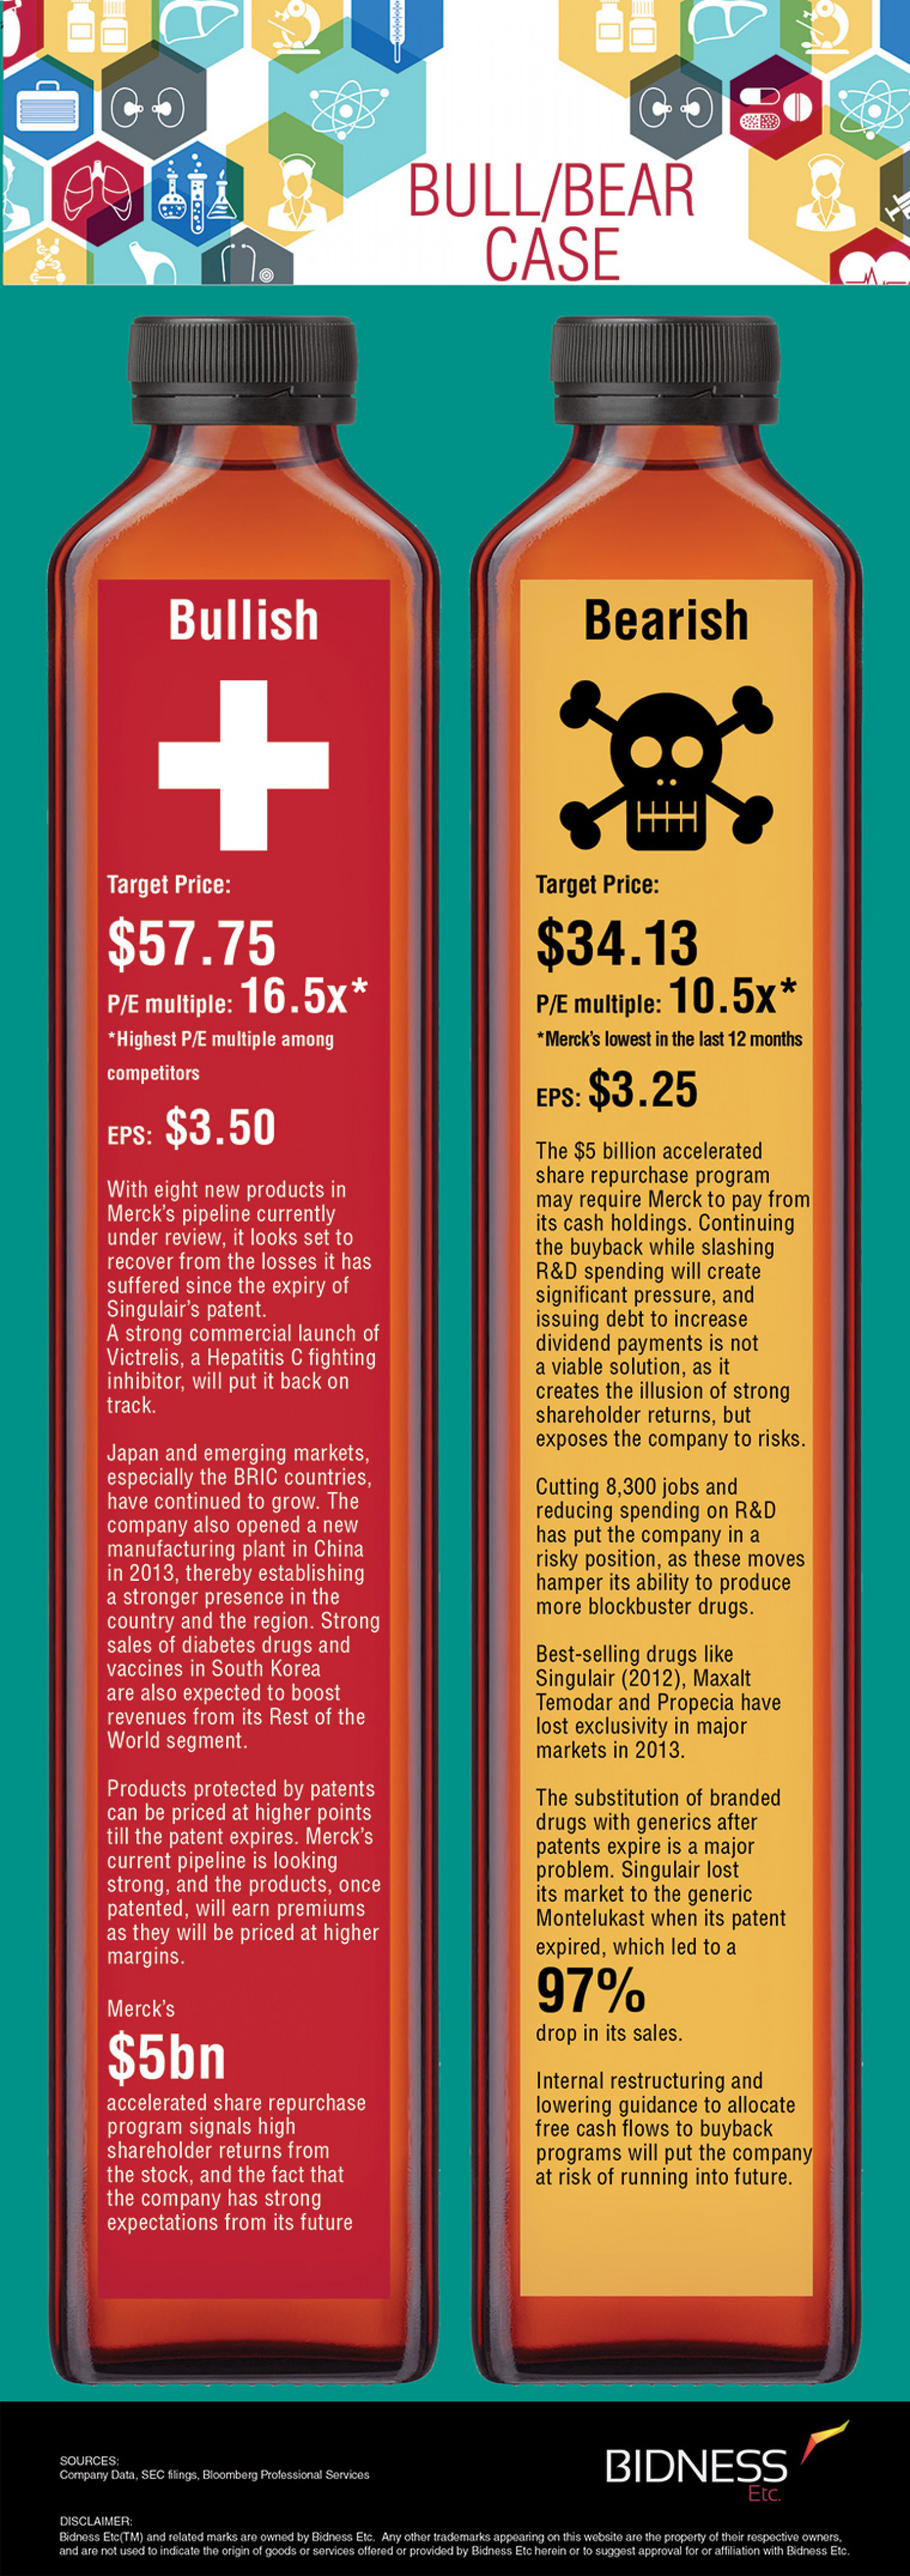 Merck (MRK) Bull Bear Case Infographic